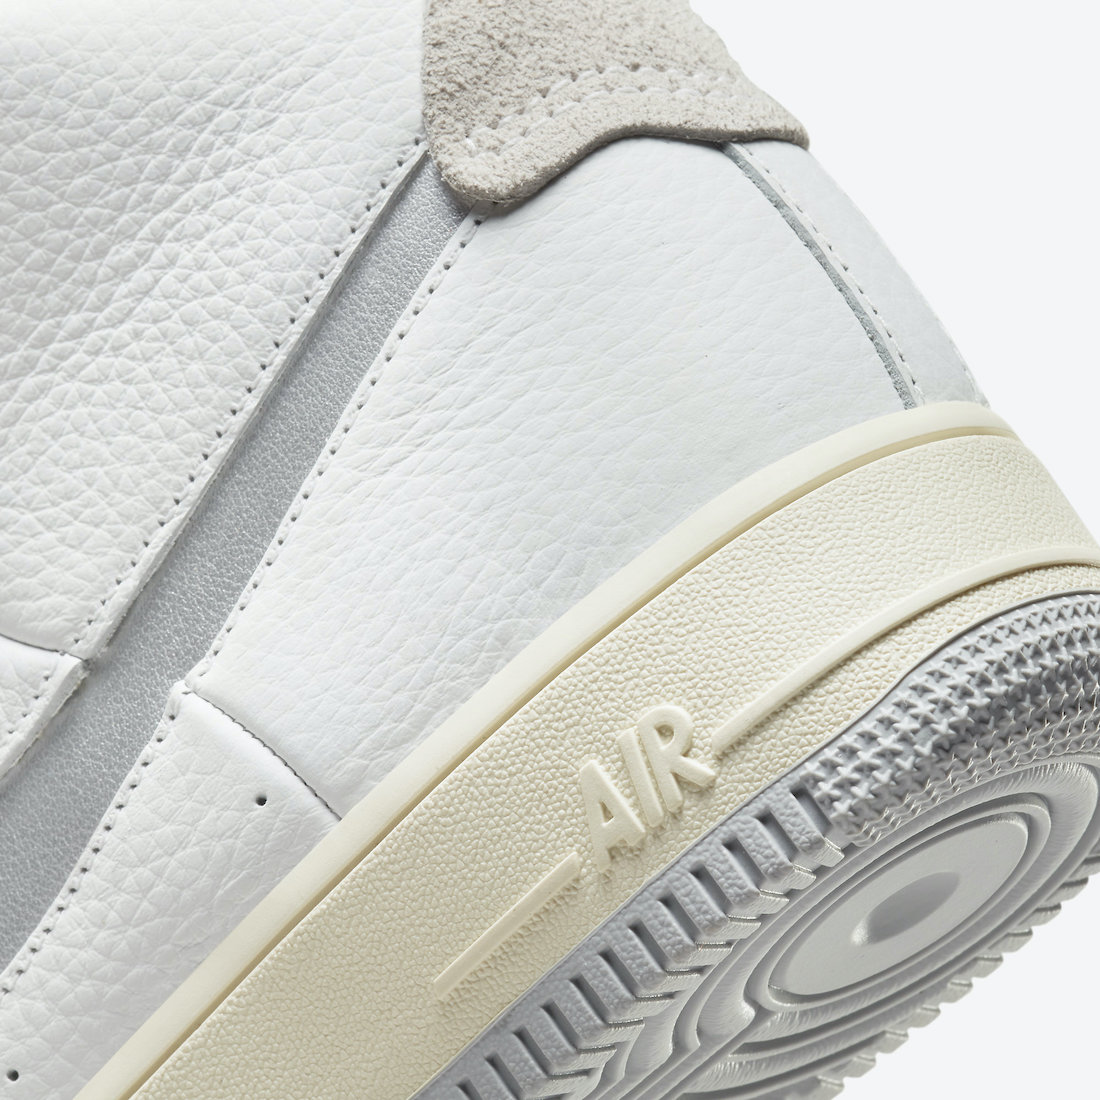 Nike Air Force 1 Strapless Light Smoke Grey DC3590-101 Release Date